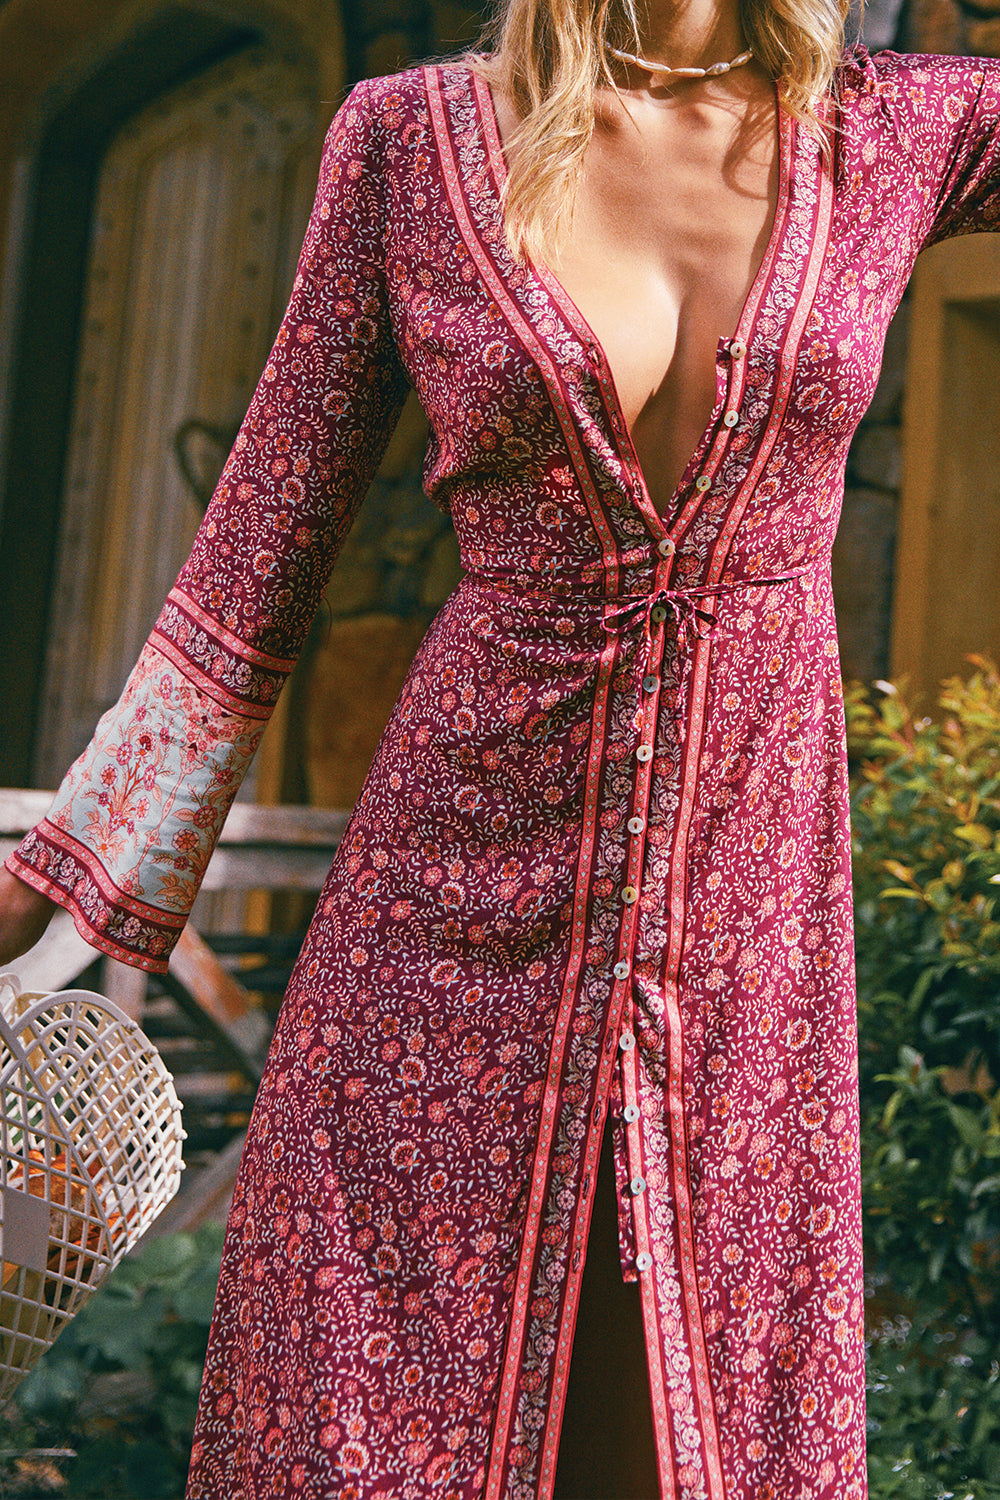 Fleetwood Duster Dress in Pomegranate